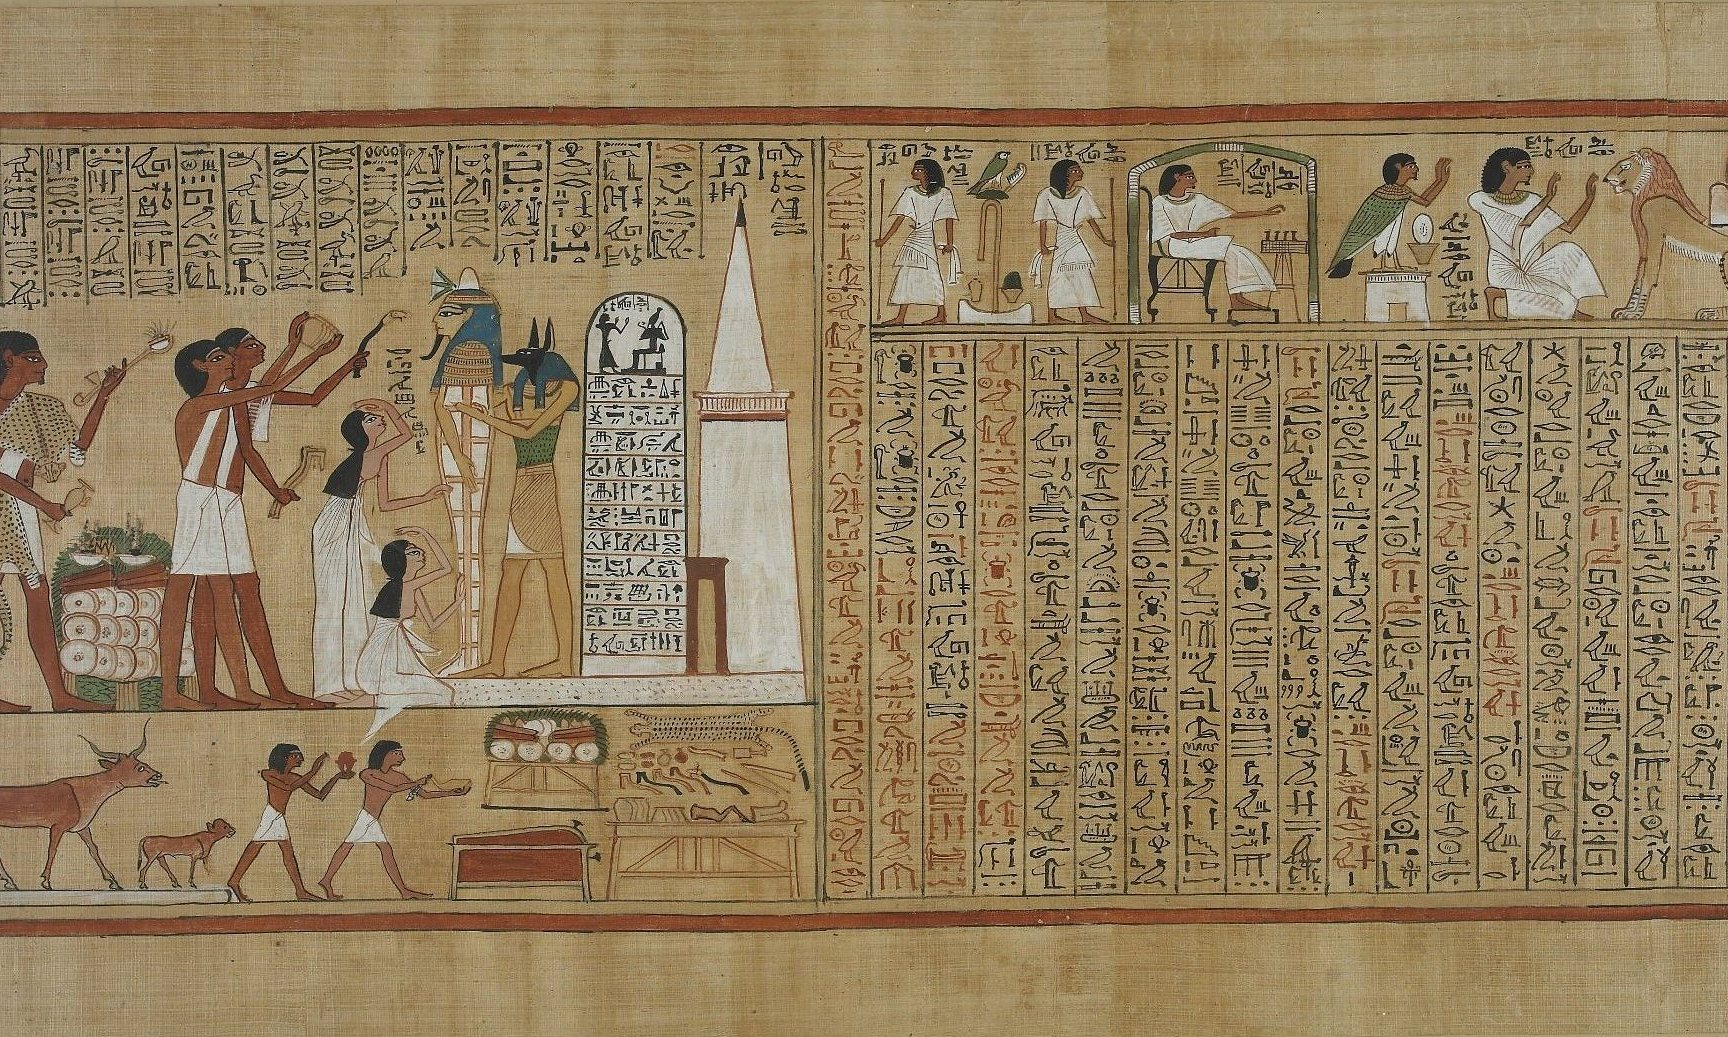 Ancient Egyptian Hieroglyphic Texts Translated Into